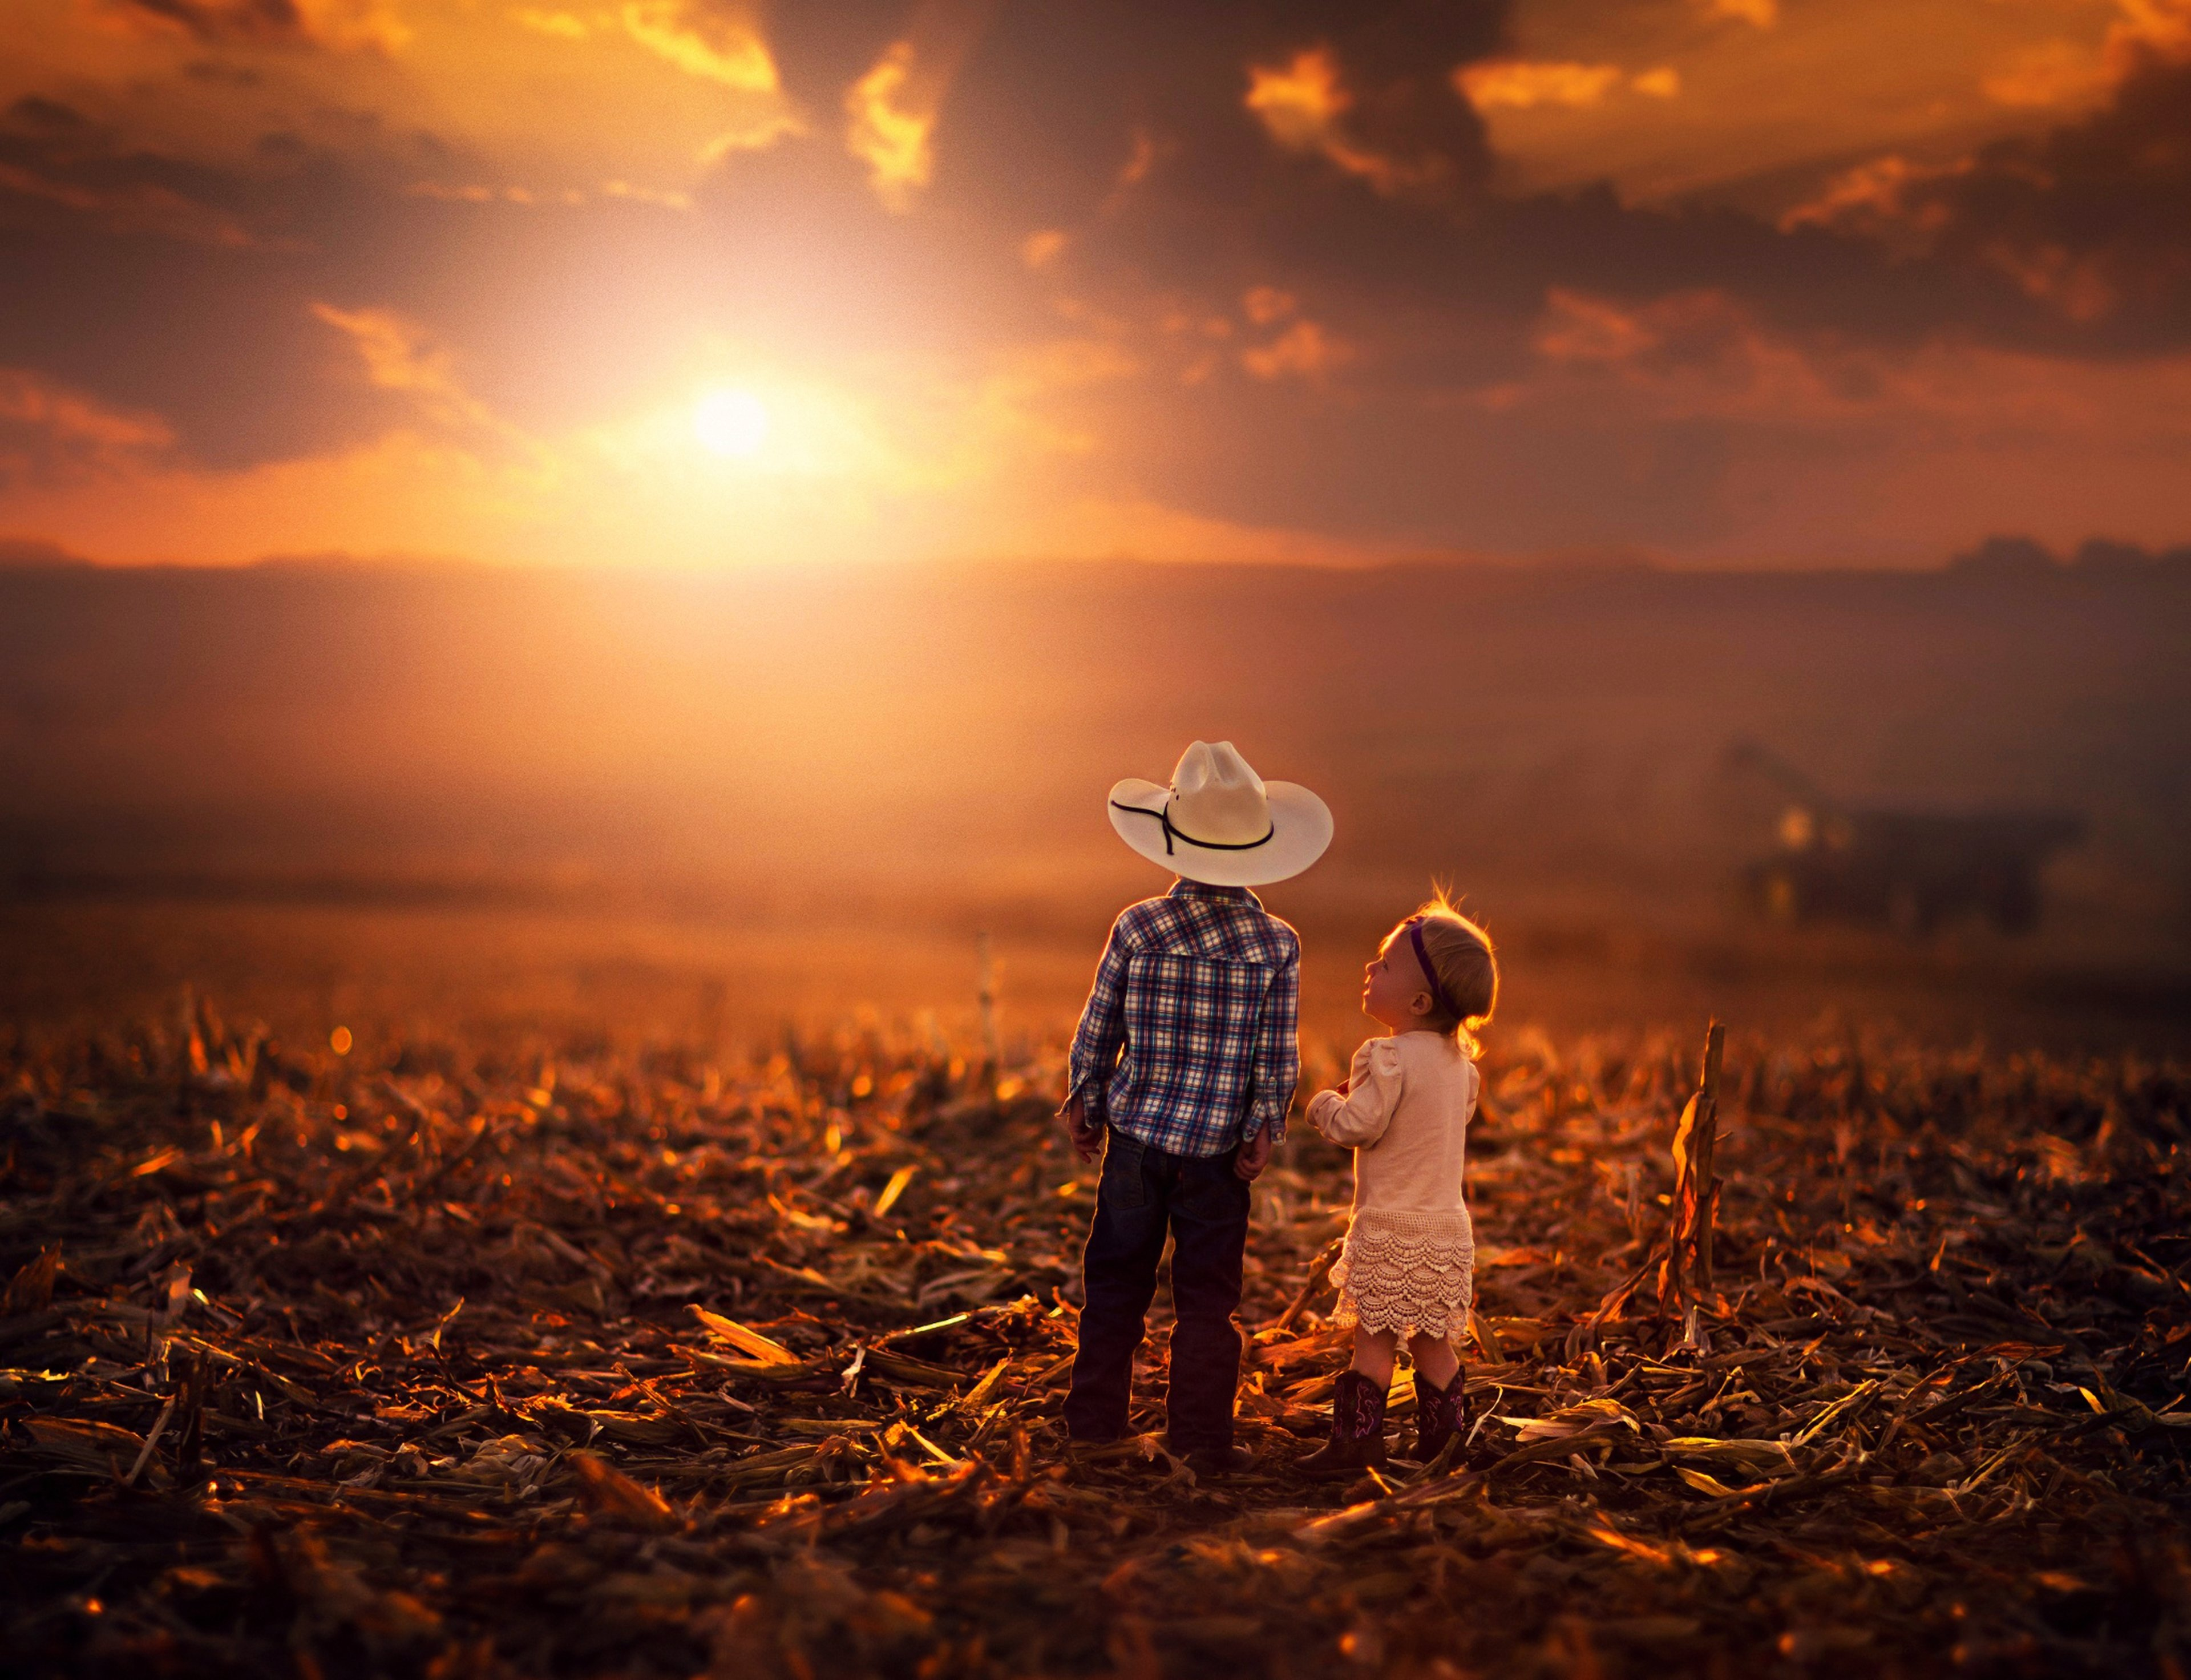 61885 download wallpaper Children, Sunset, Grass, Sky, Miscellanea, Miscellaneous screensavers and pictures for free